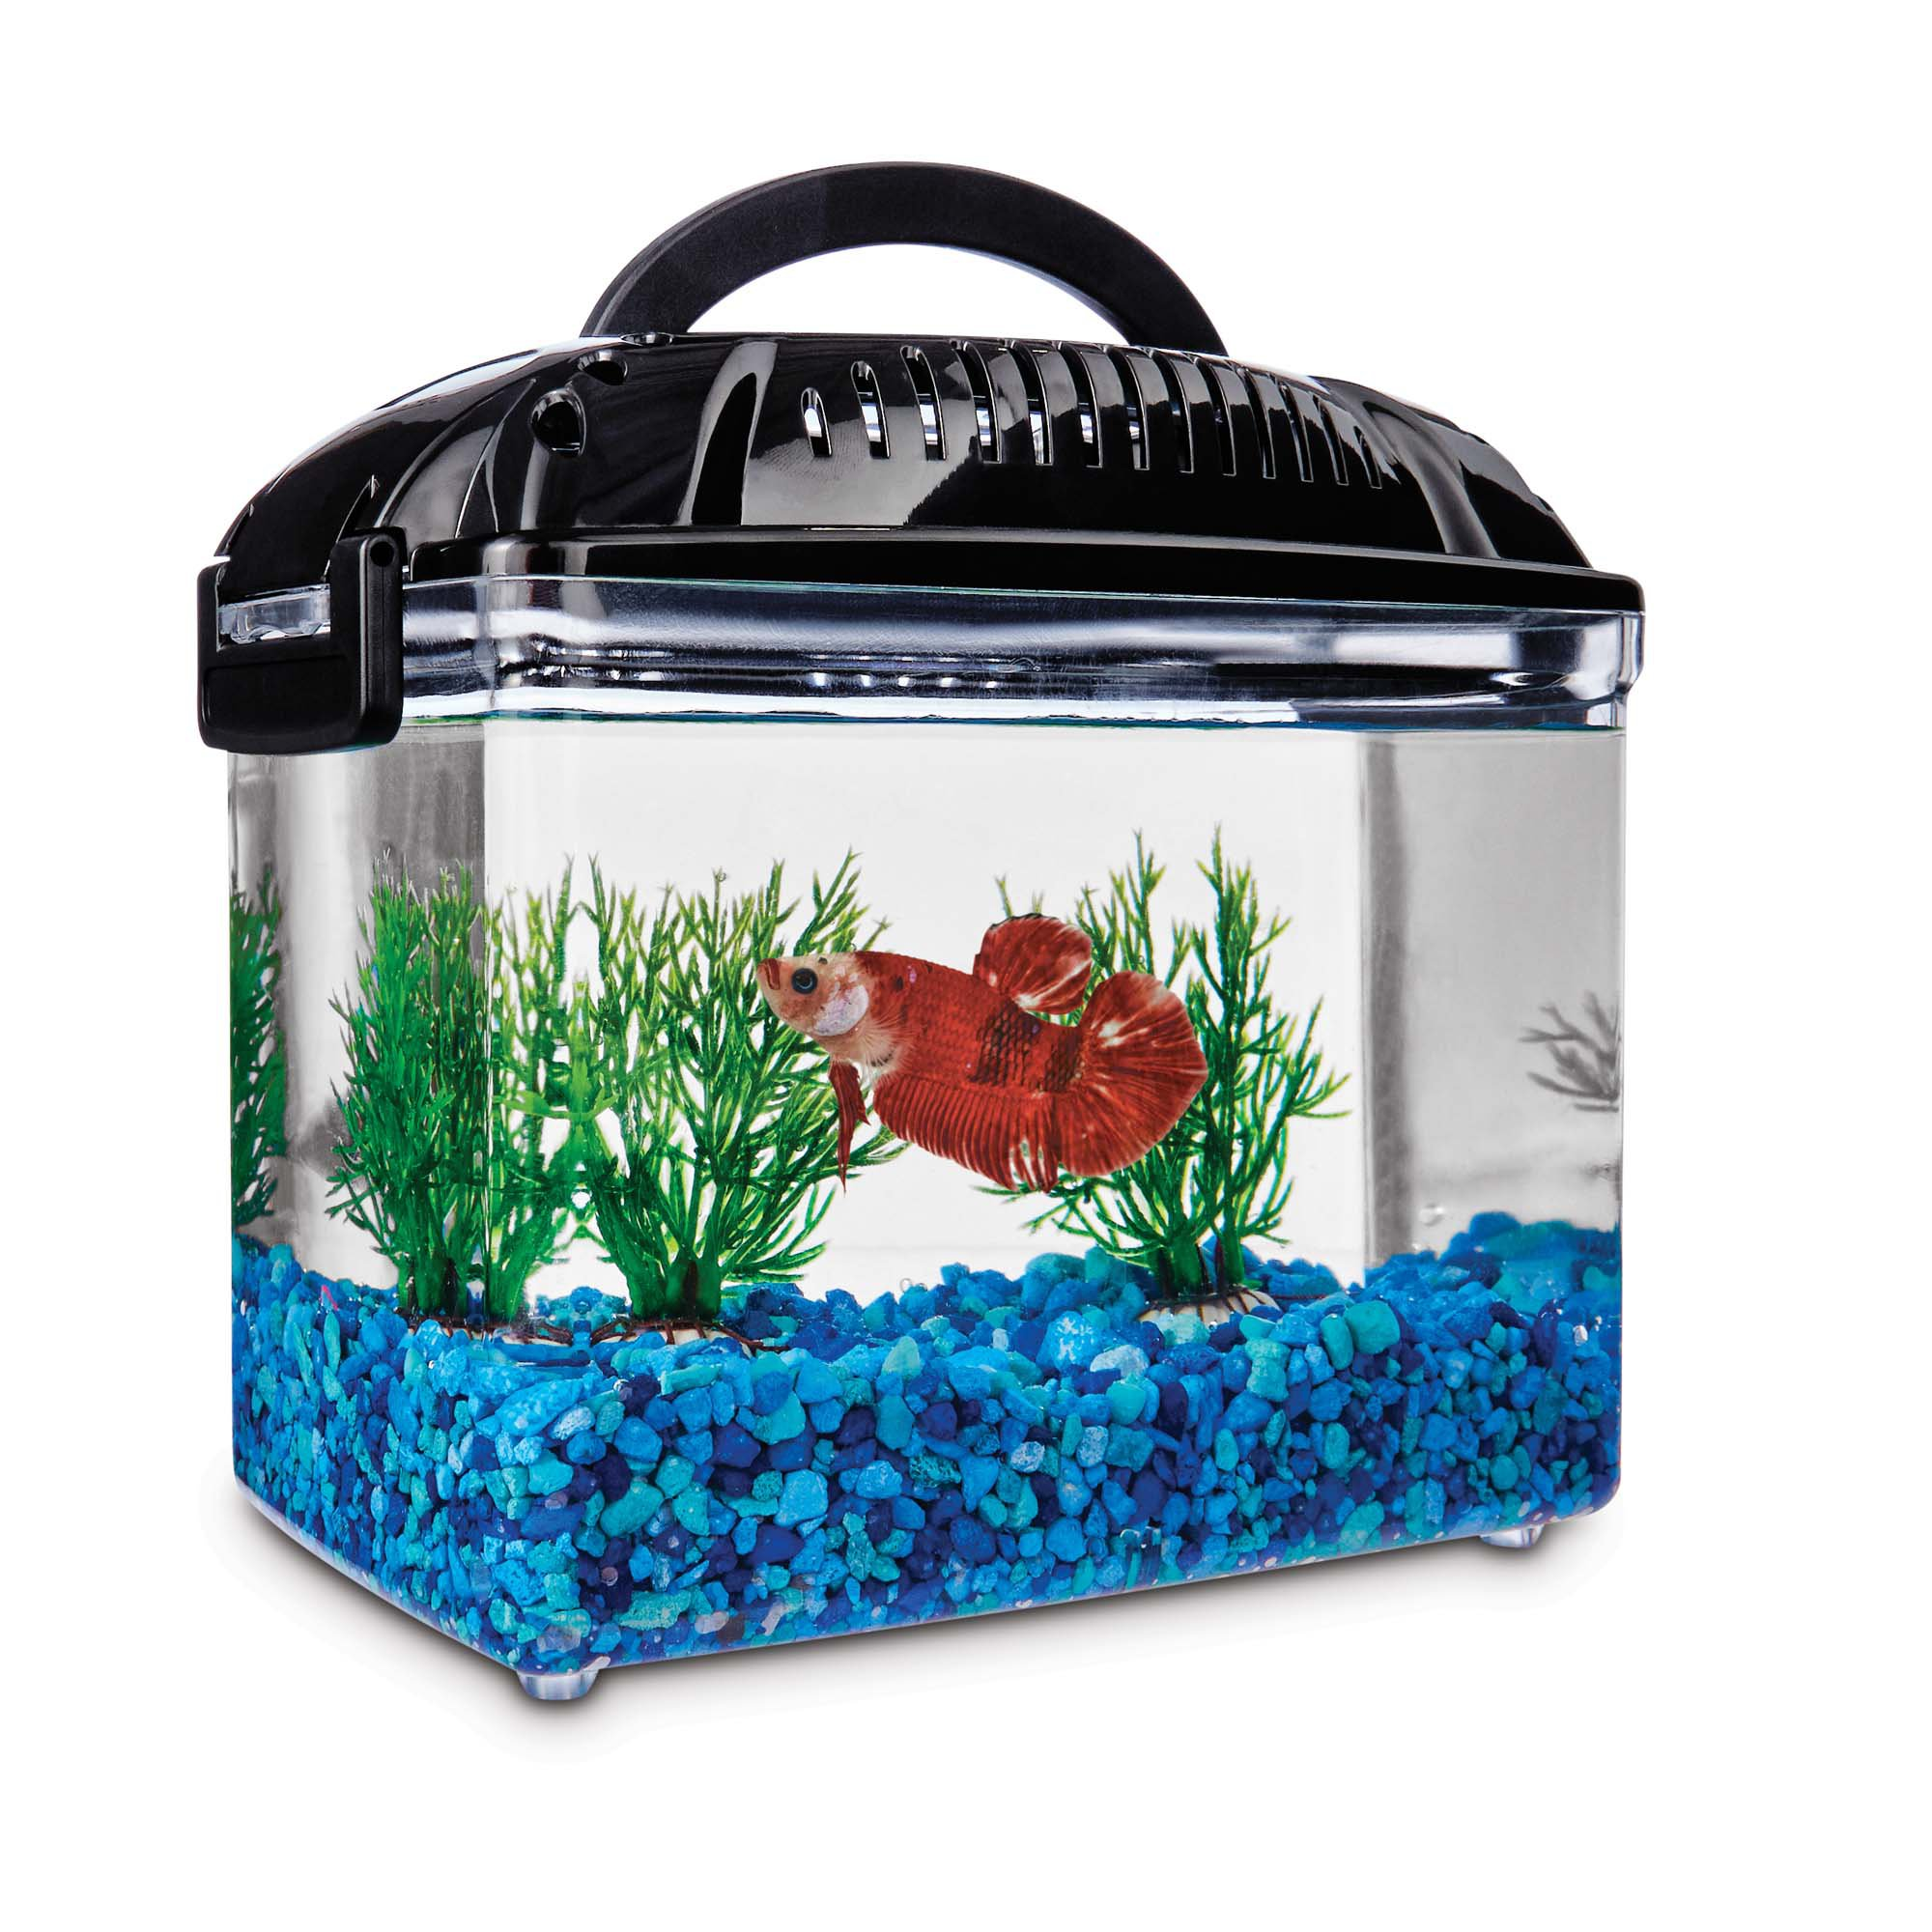 Imagitarium betta fish dual habitat tank in black petco for Betta fish tanks petco